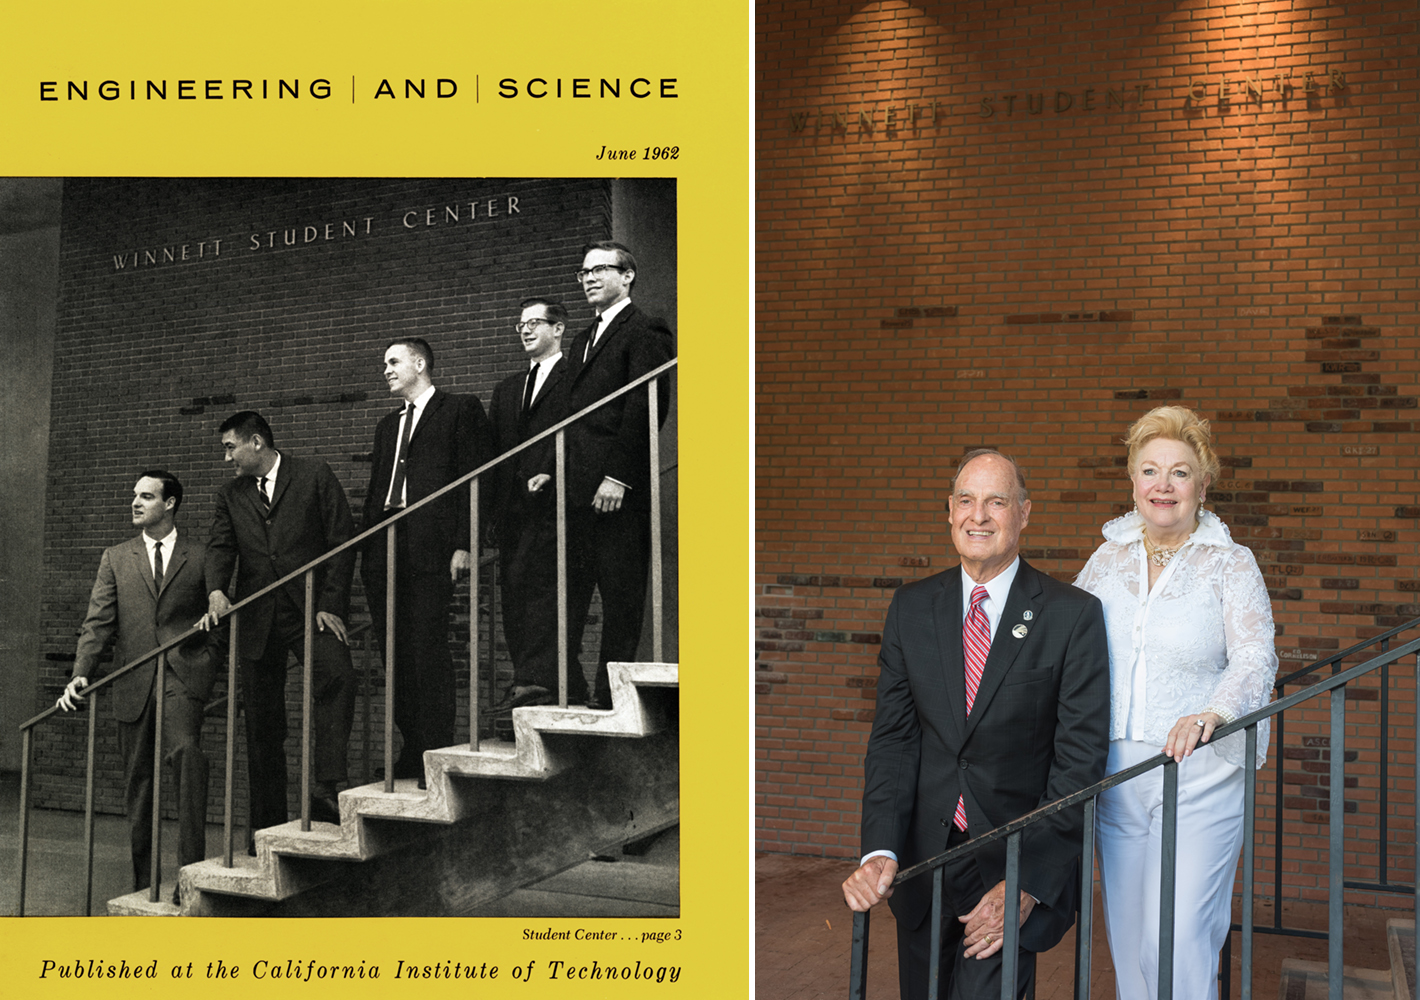 Fred and Joyce Hameetman made possible the construction of the Hameetman Center, which will replace Winnett, with their generous gift to the Institute.  Left  p hoto courtesy of the Caltech Archives. Right photo: Chris Flynn.